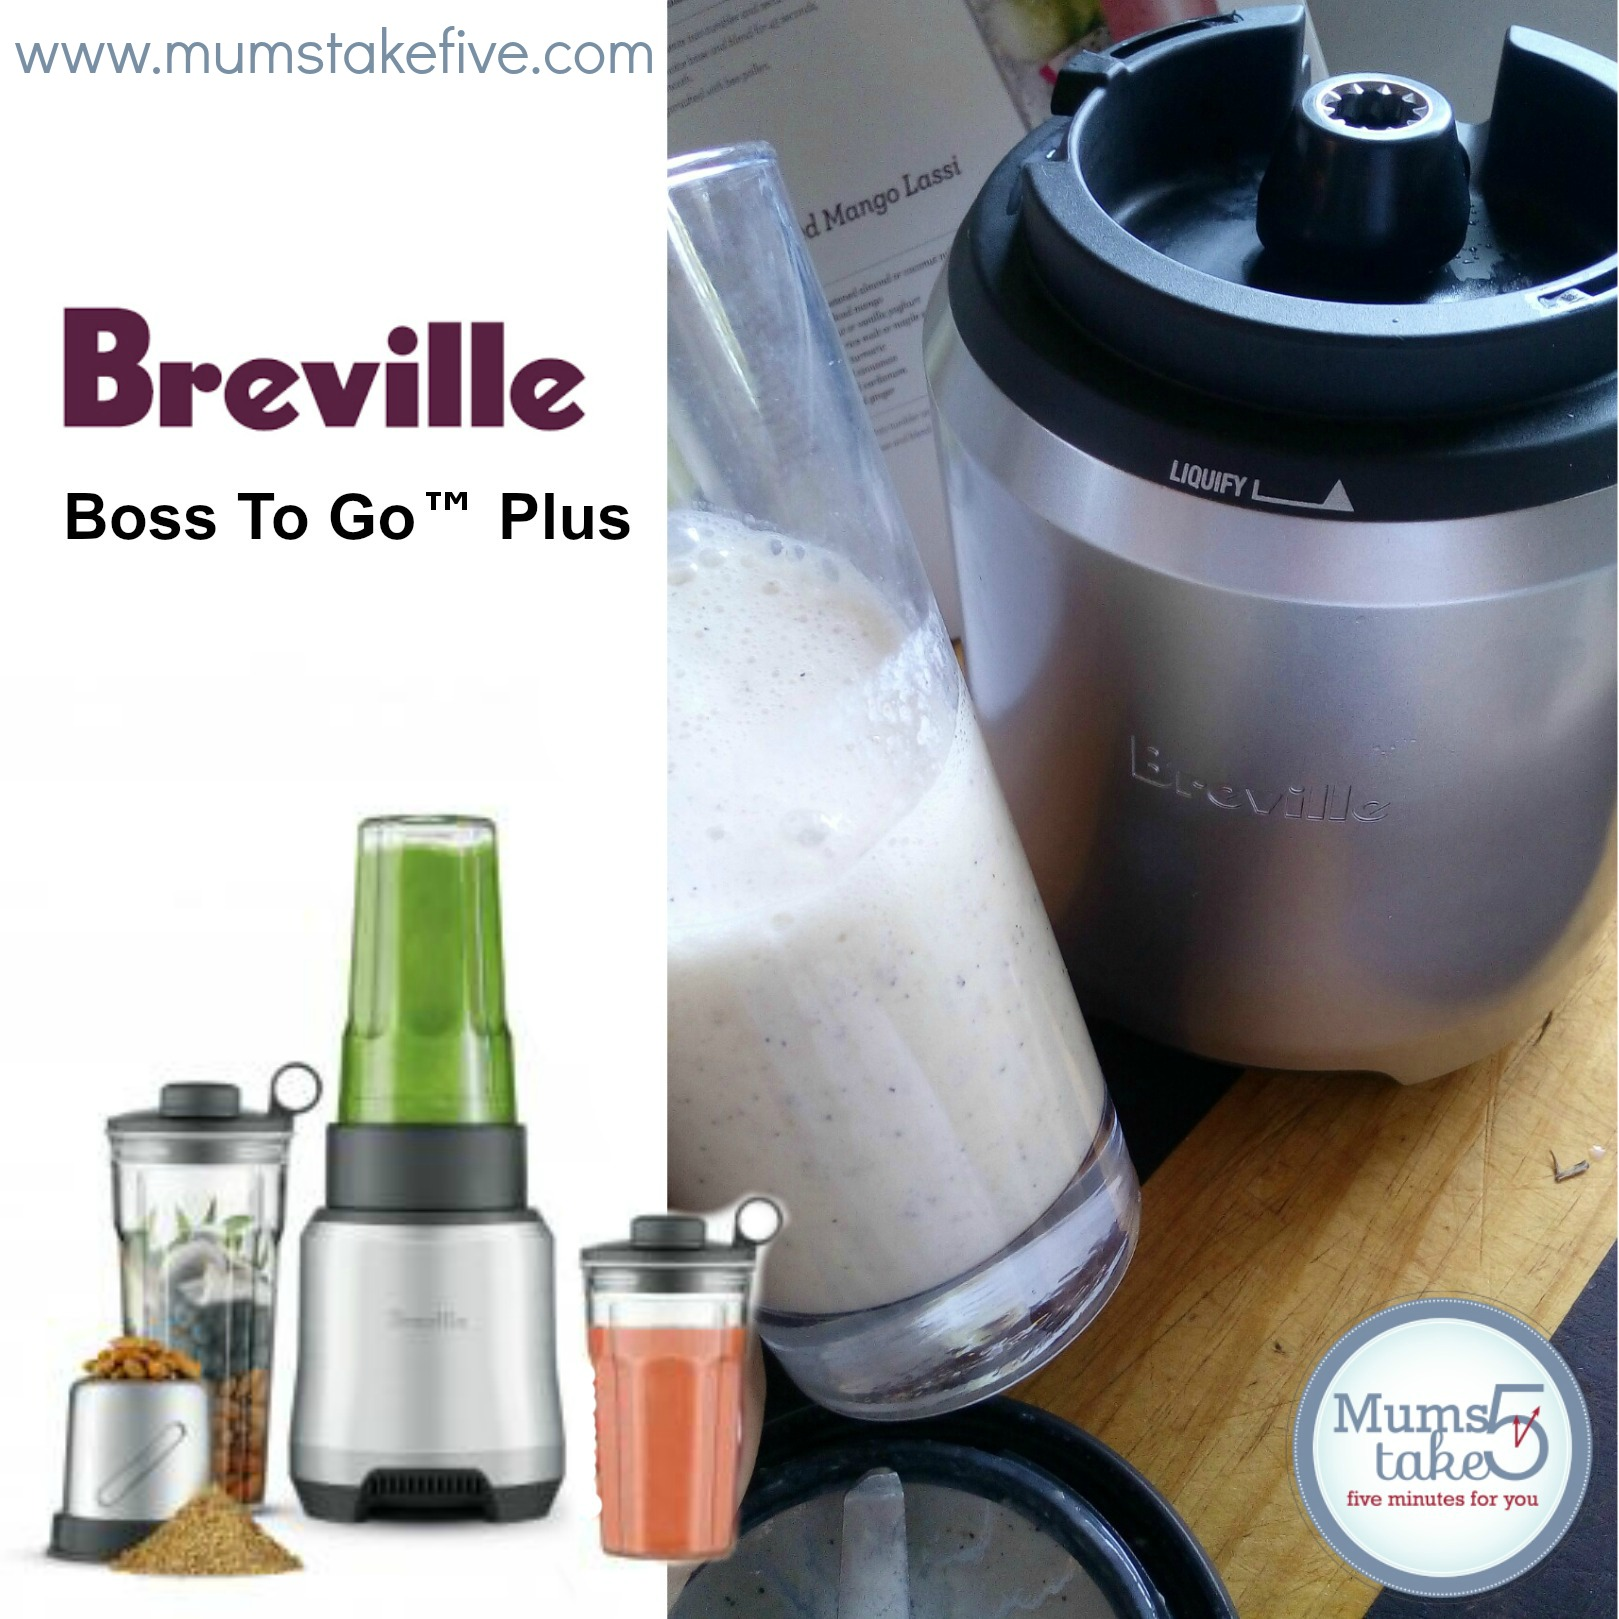 Breville Boss To Go™ Plus